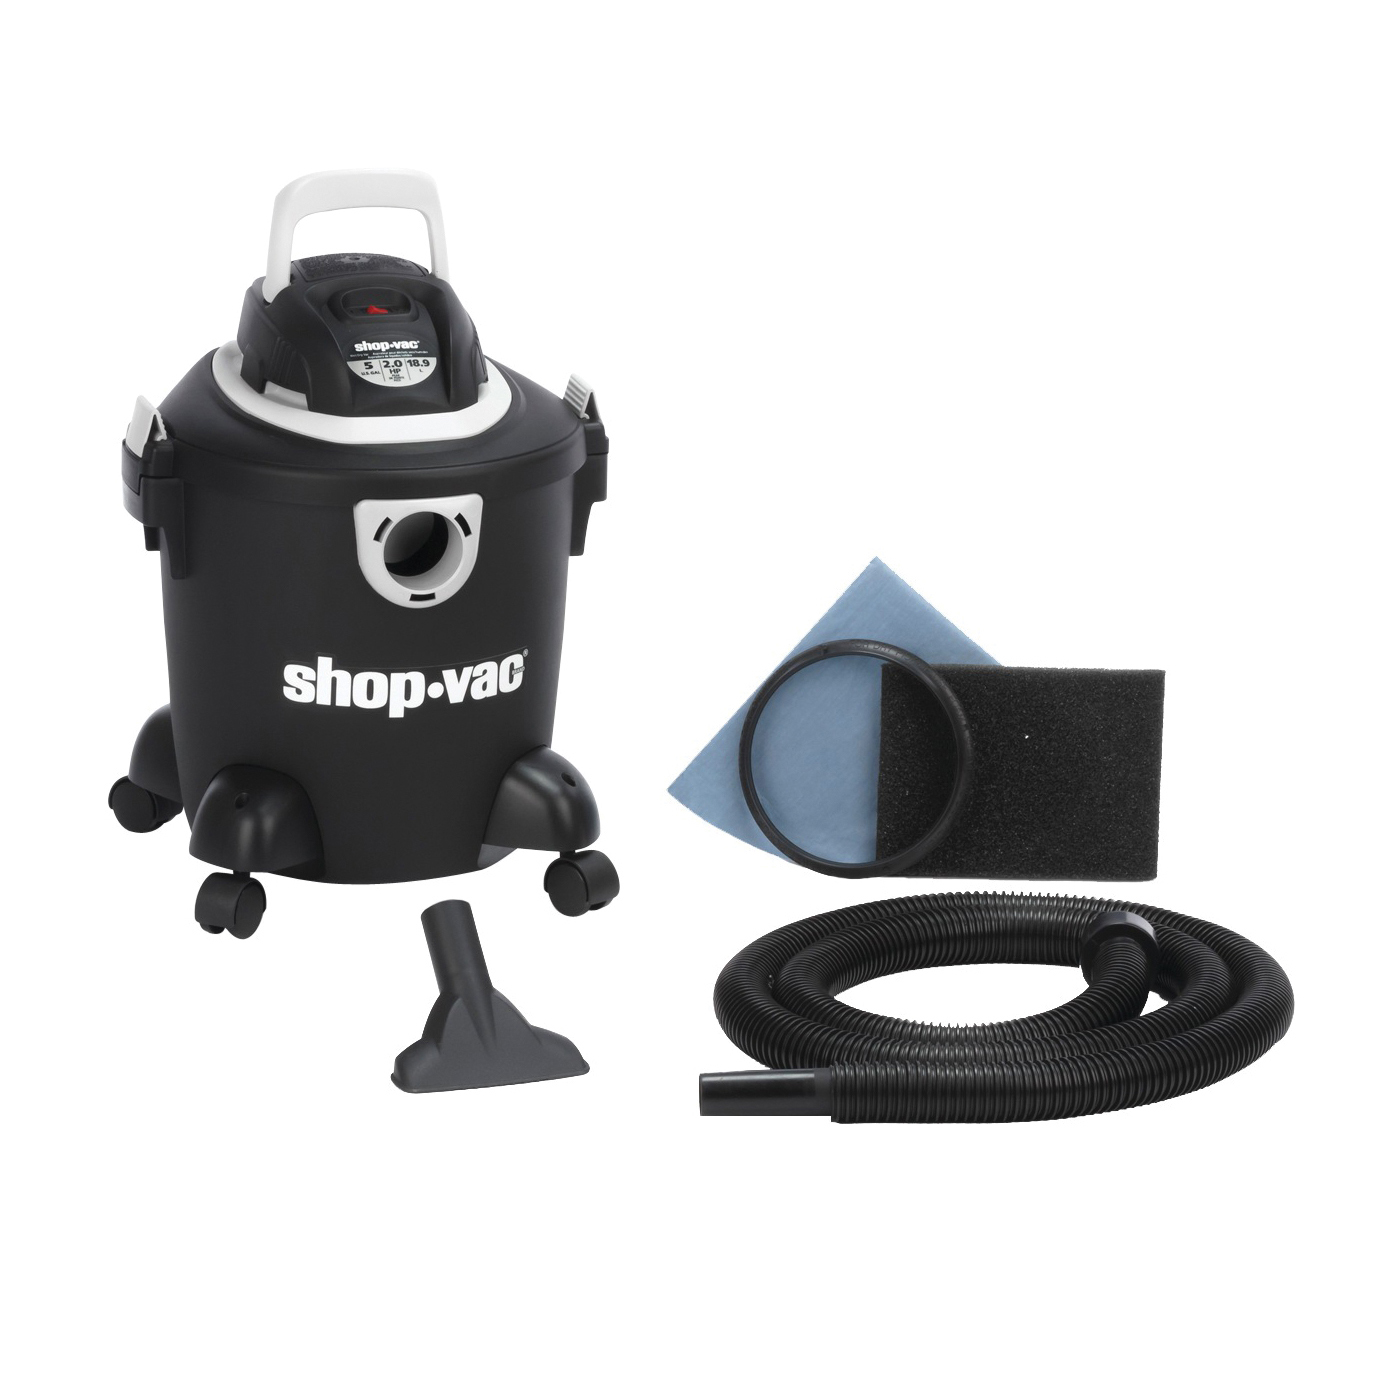 Picture of Shop-Vac Hardware 2030400 Wet/Dry Utility Vacuum, 5 gal Vacuum, Foam Sleeve Filter, 120 V